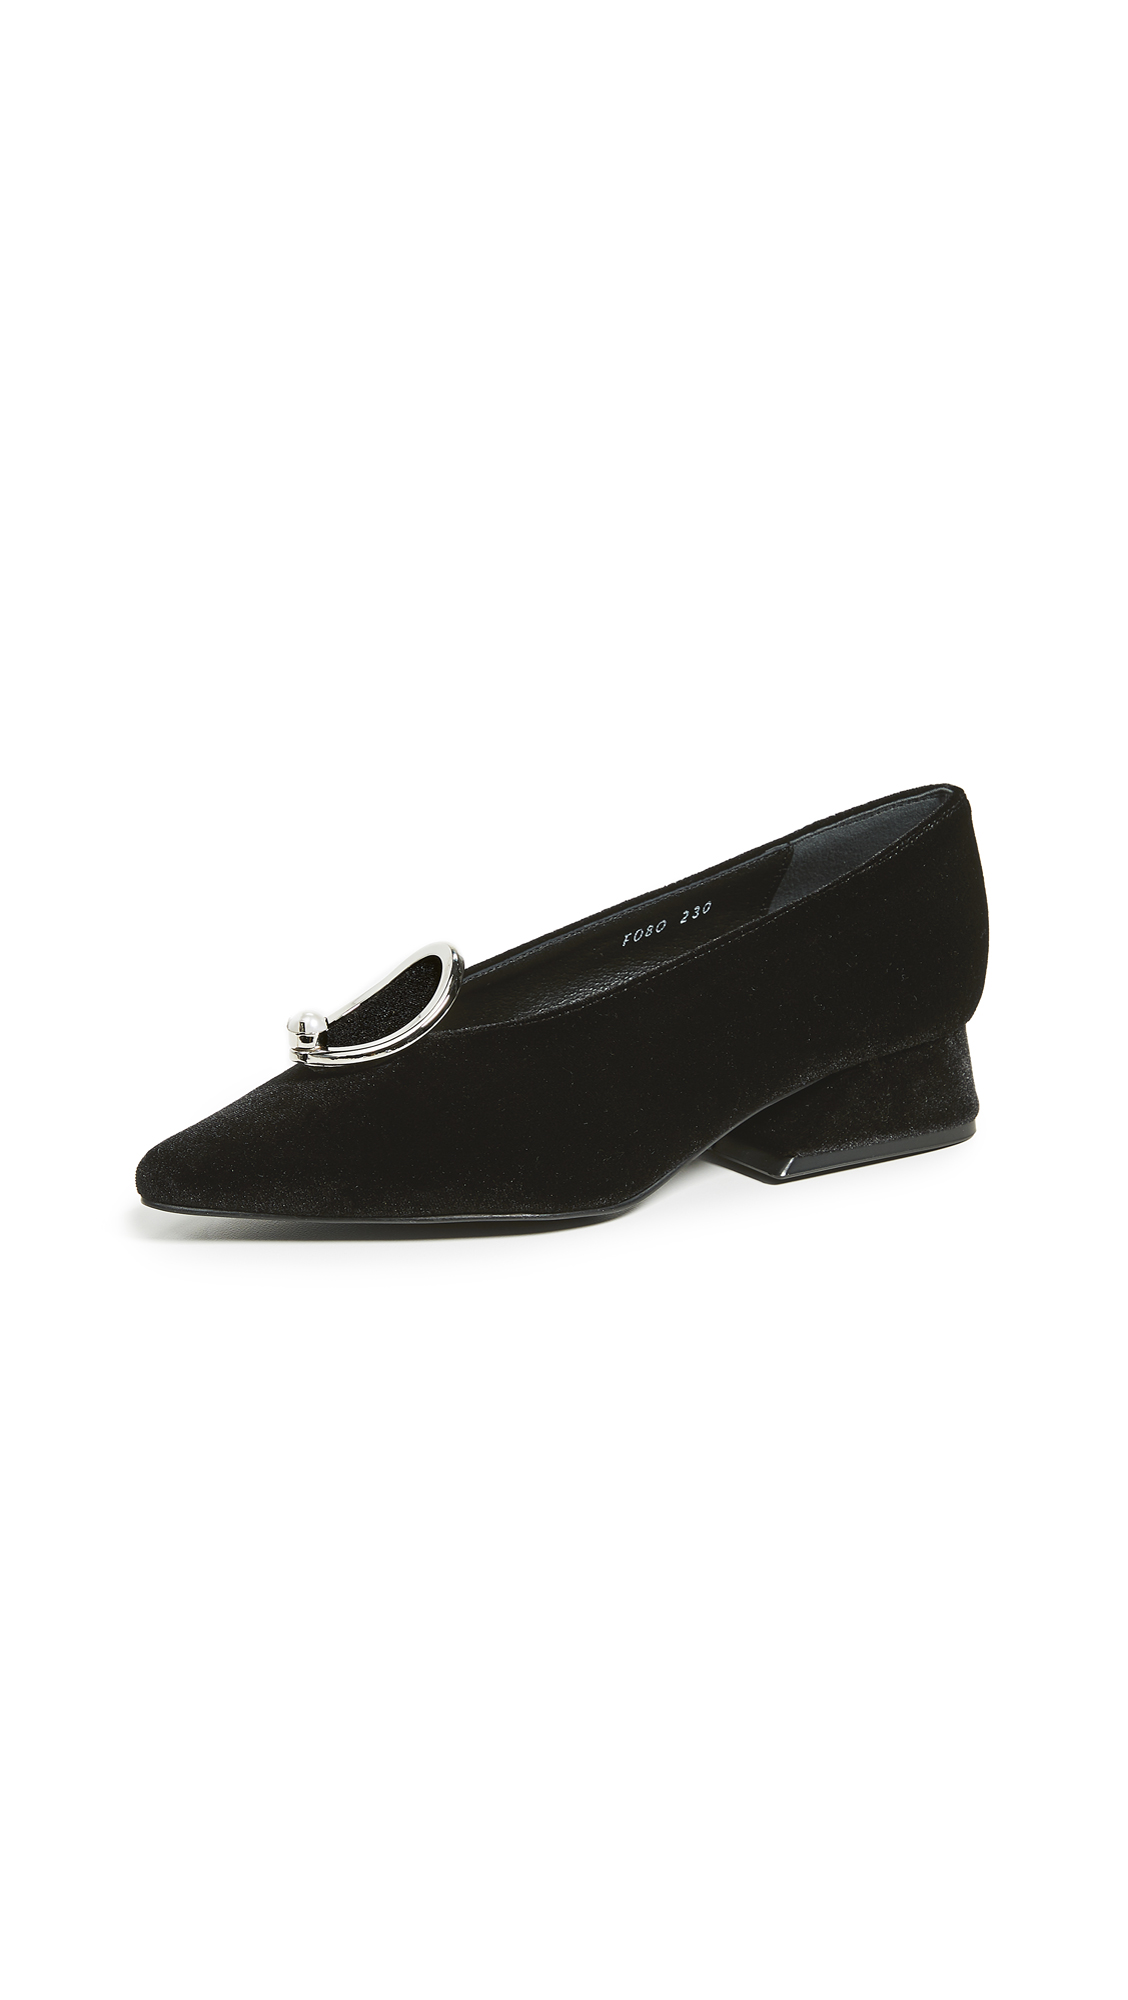 Yuul Yie Y-Heel Low Pumps